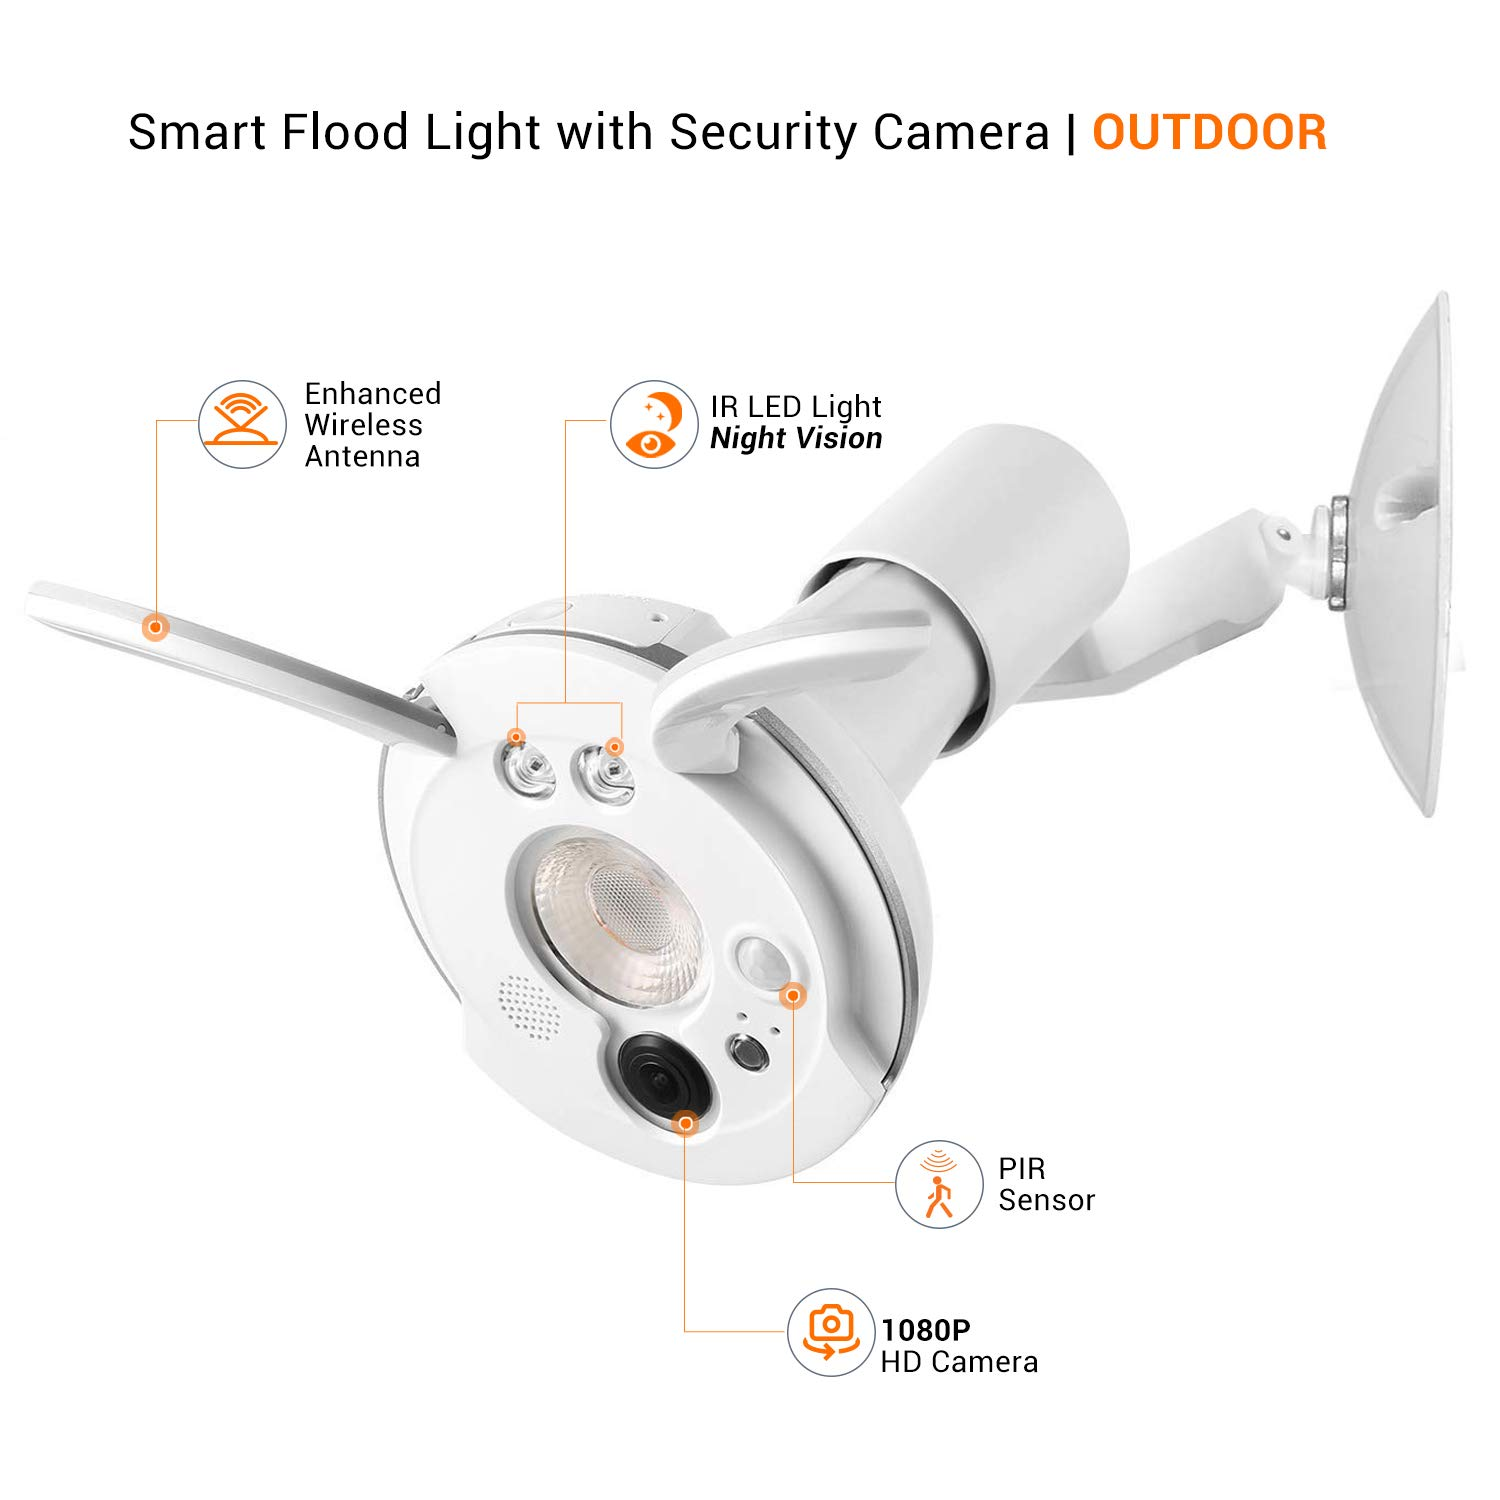 Sengled Smart LED Floodlight with Security Camera Motion-Activated Light, Wireless 1080p HD Camera with Night Vision (Snap - 2nd Gen), Weatherproof for Outdoor Use, PAR38 E26 Base, 1 Pack